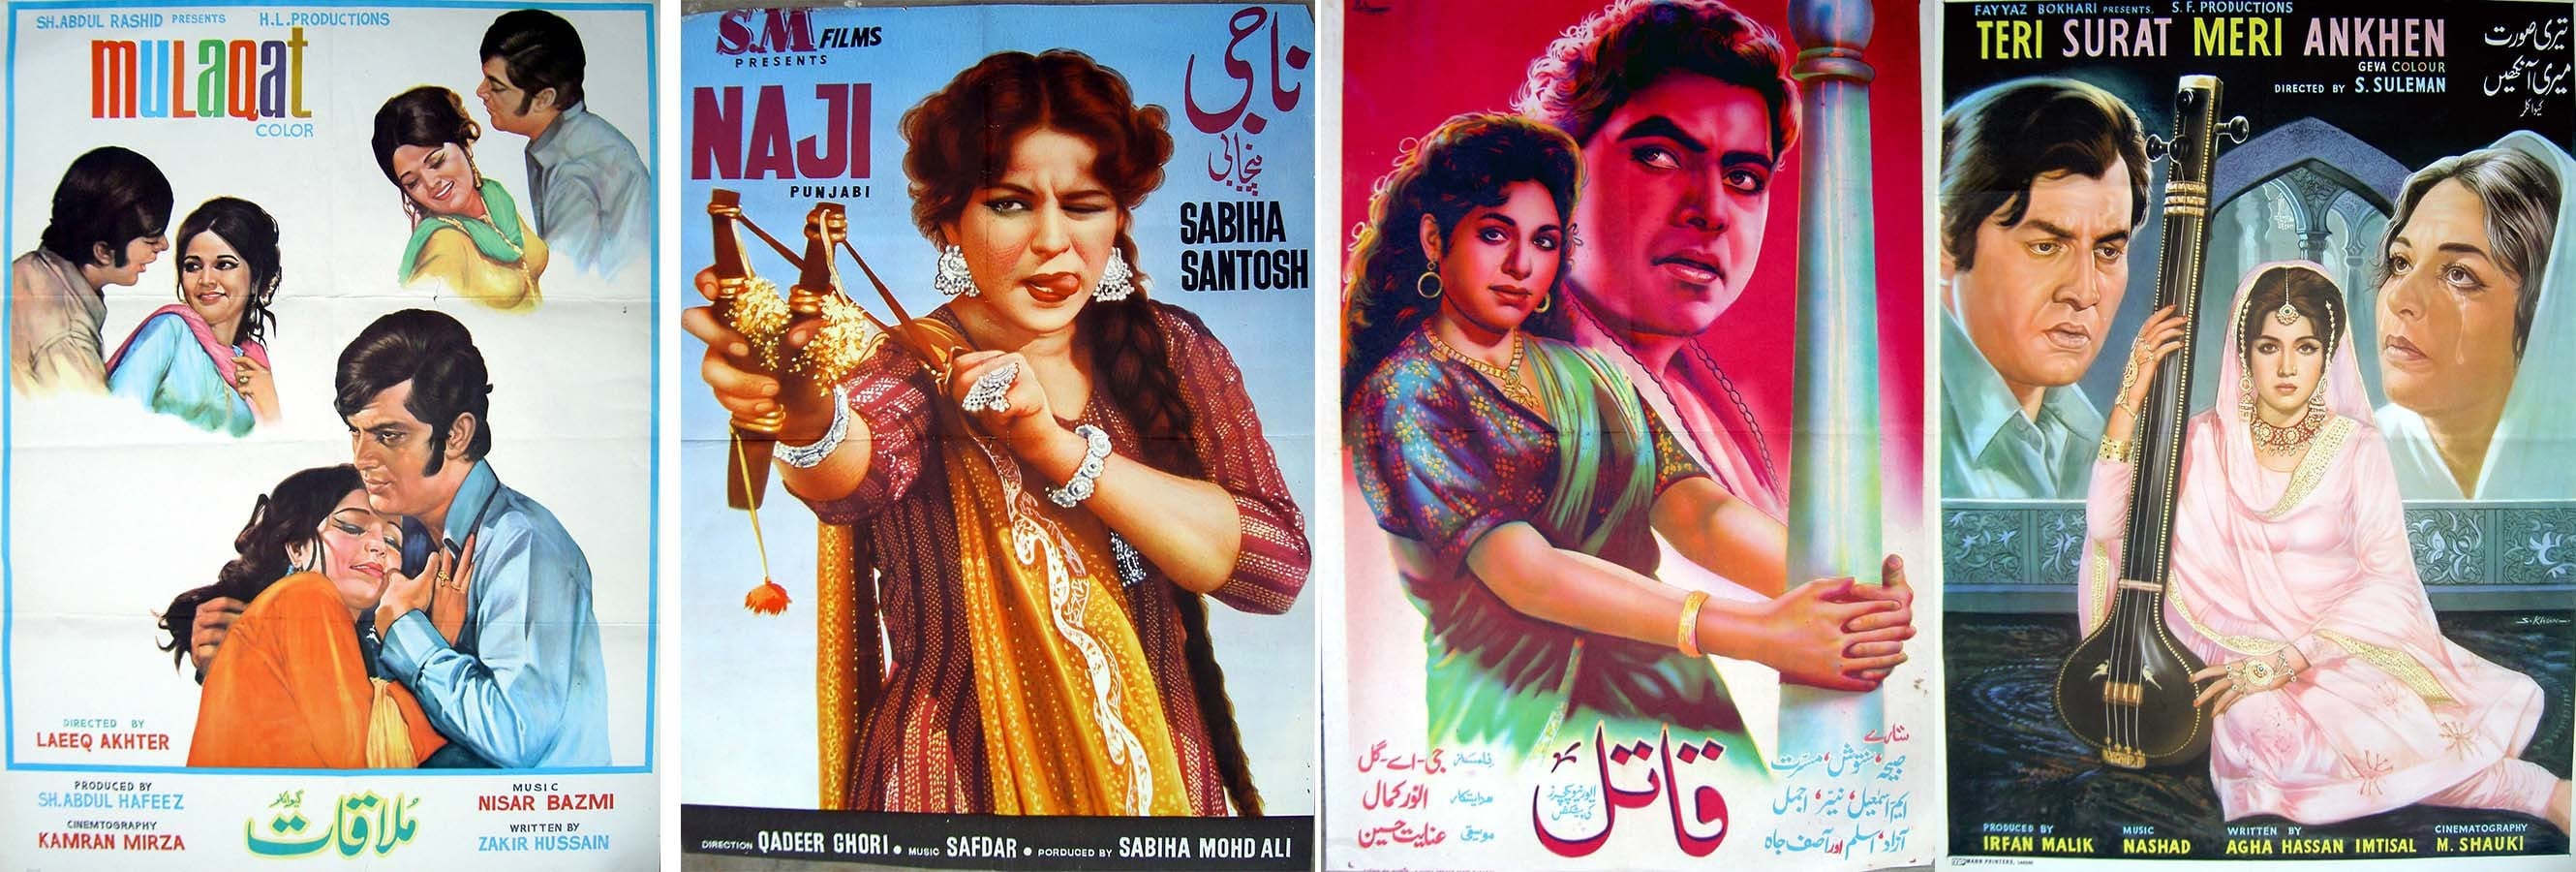 During the sixties and seventies, often dubbed the 'golden age' of Pakistani cinema, hand-painted film posters were the most popular form of promotion. This was at a time when the industry released more than a 100 films annually, making it one of the largest in the world. As the fortunes of the industry took a turn for the worse, the art of hand-painting cinema posters also began to wane.